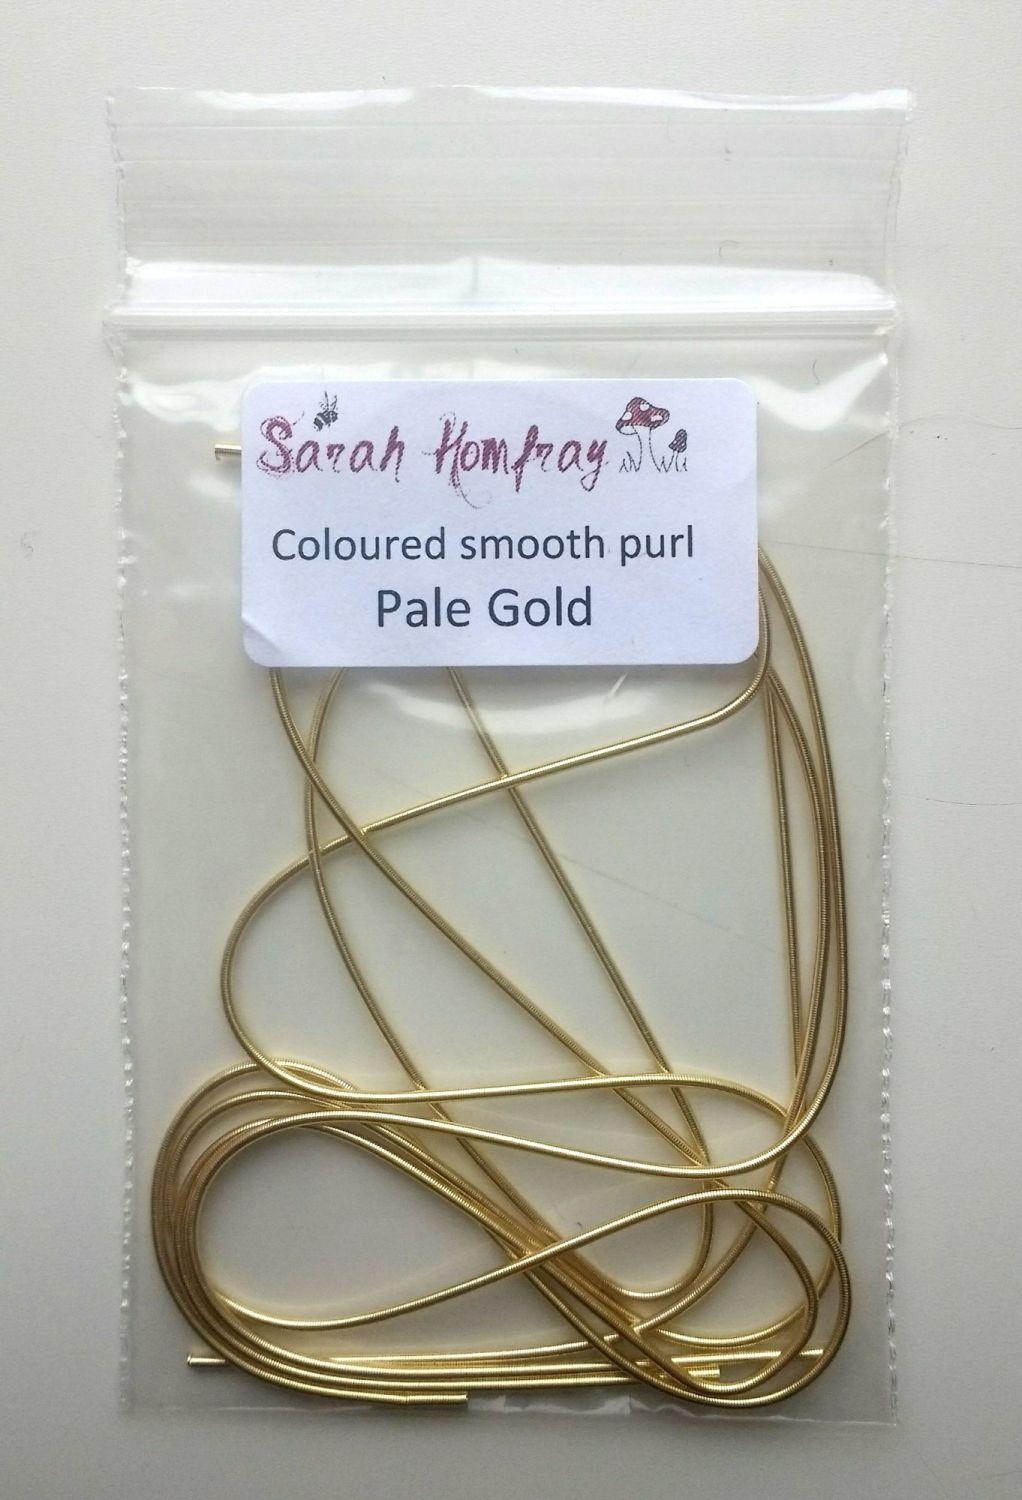 NEW! Coloured smooth purl no.6 - Pale Gold